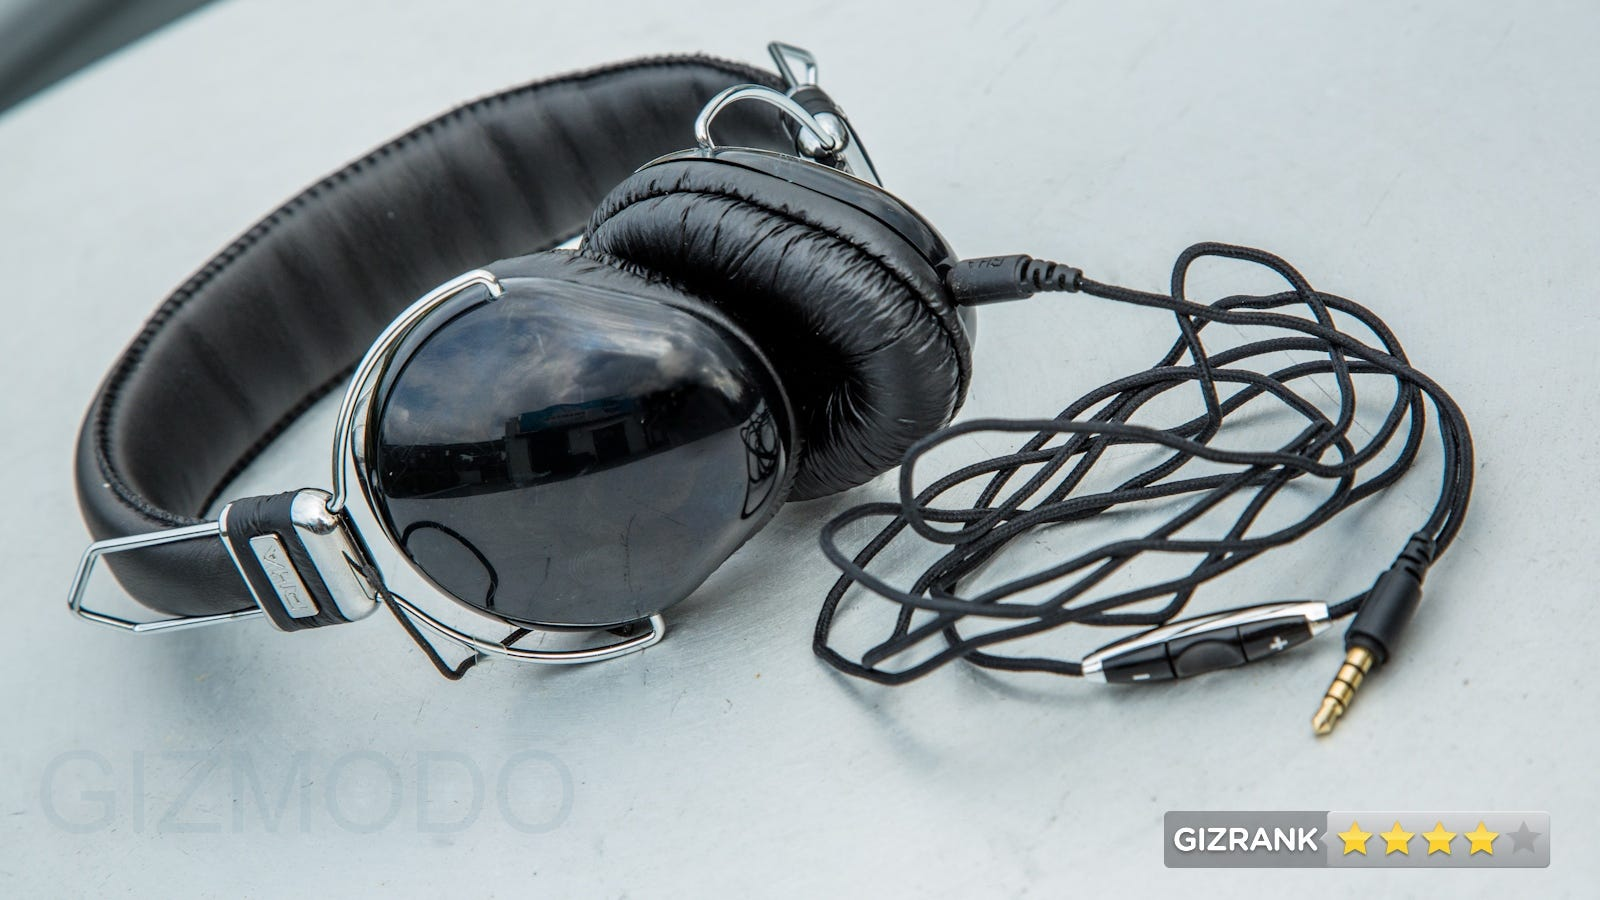 bose wireless headphones qc